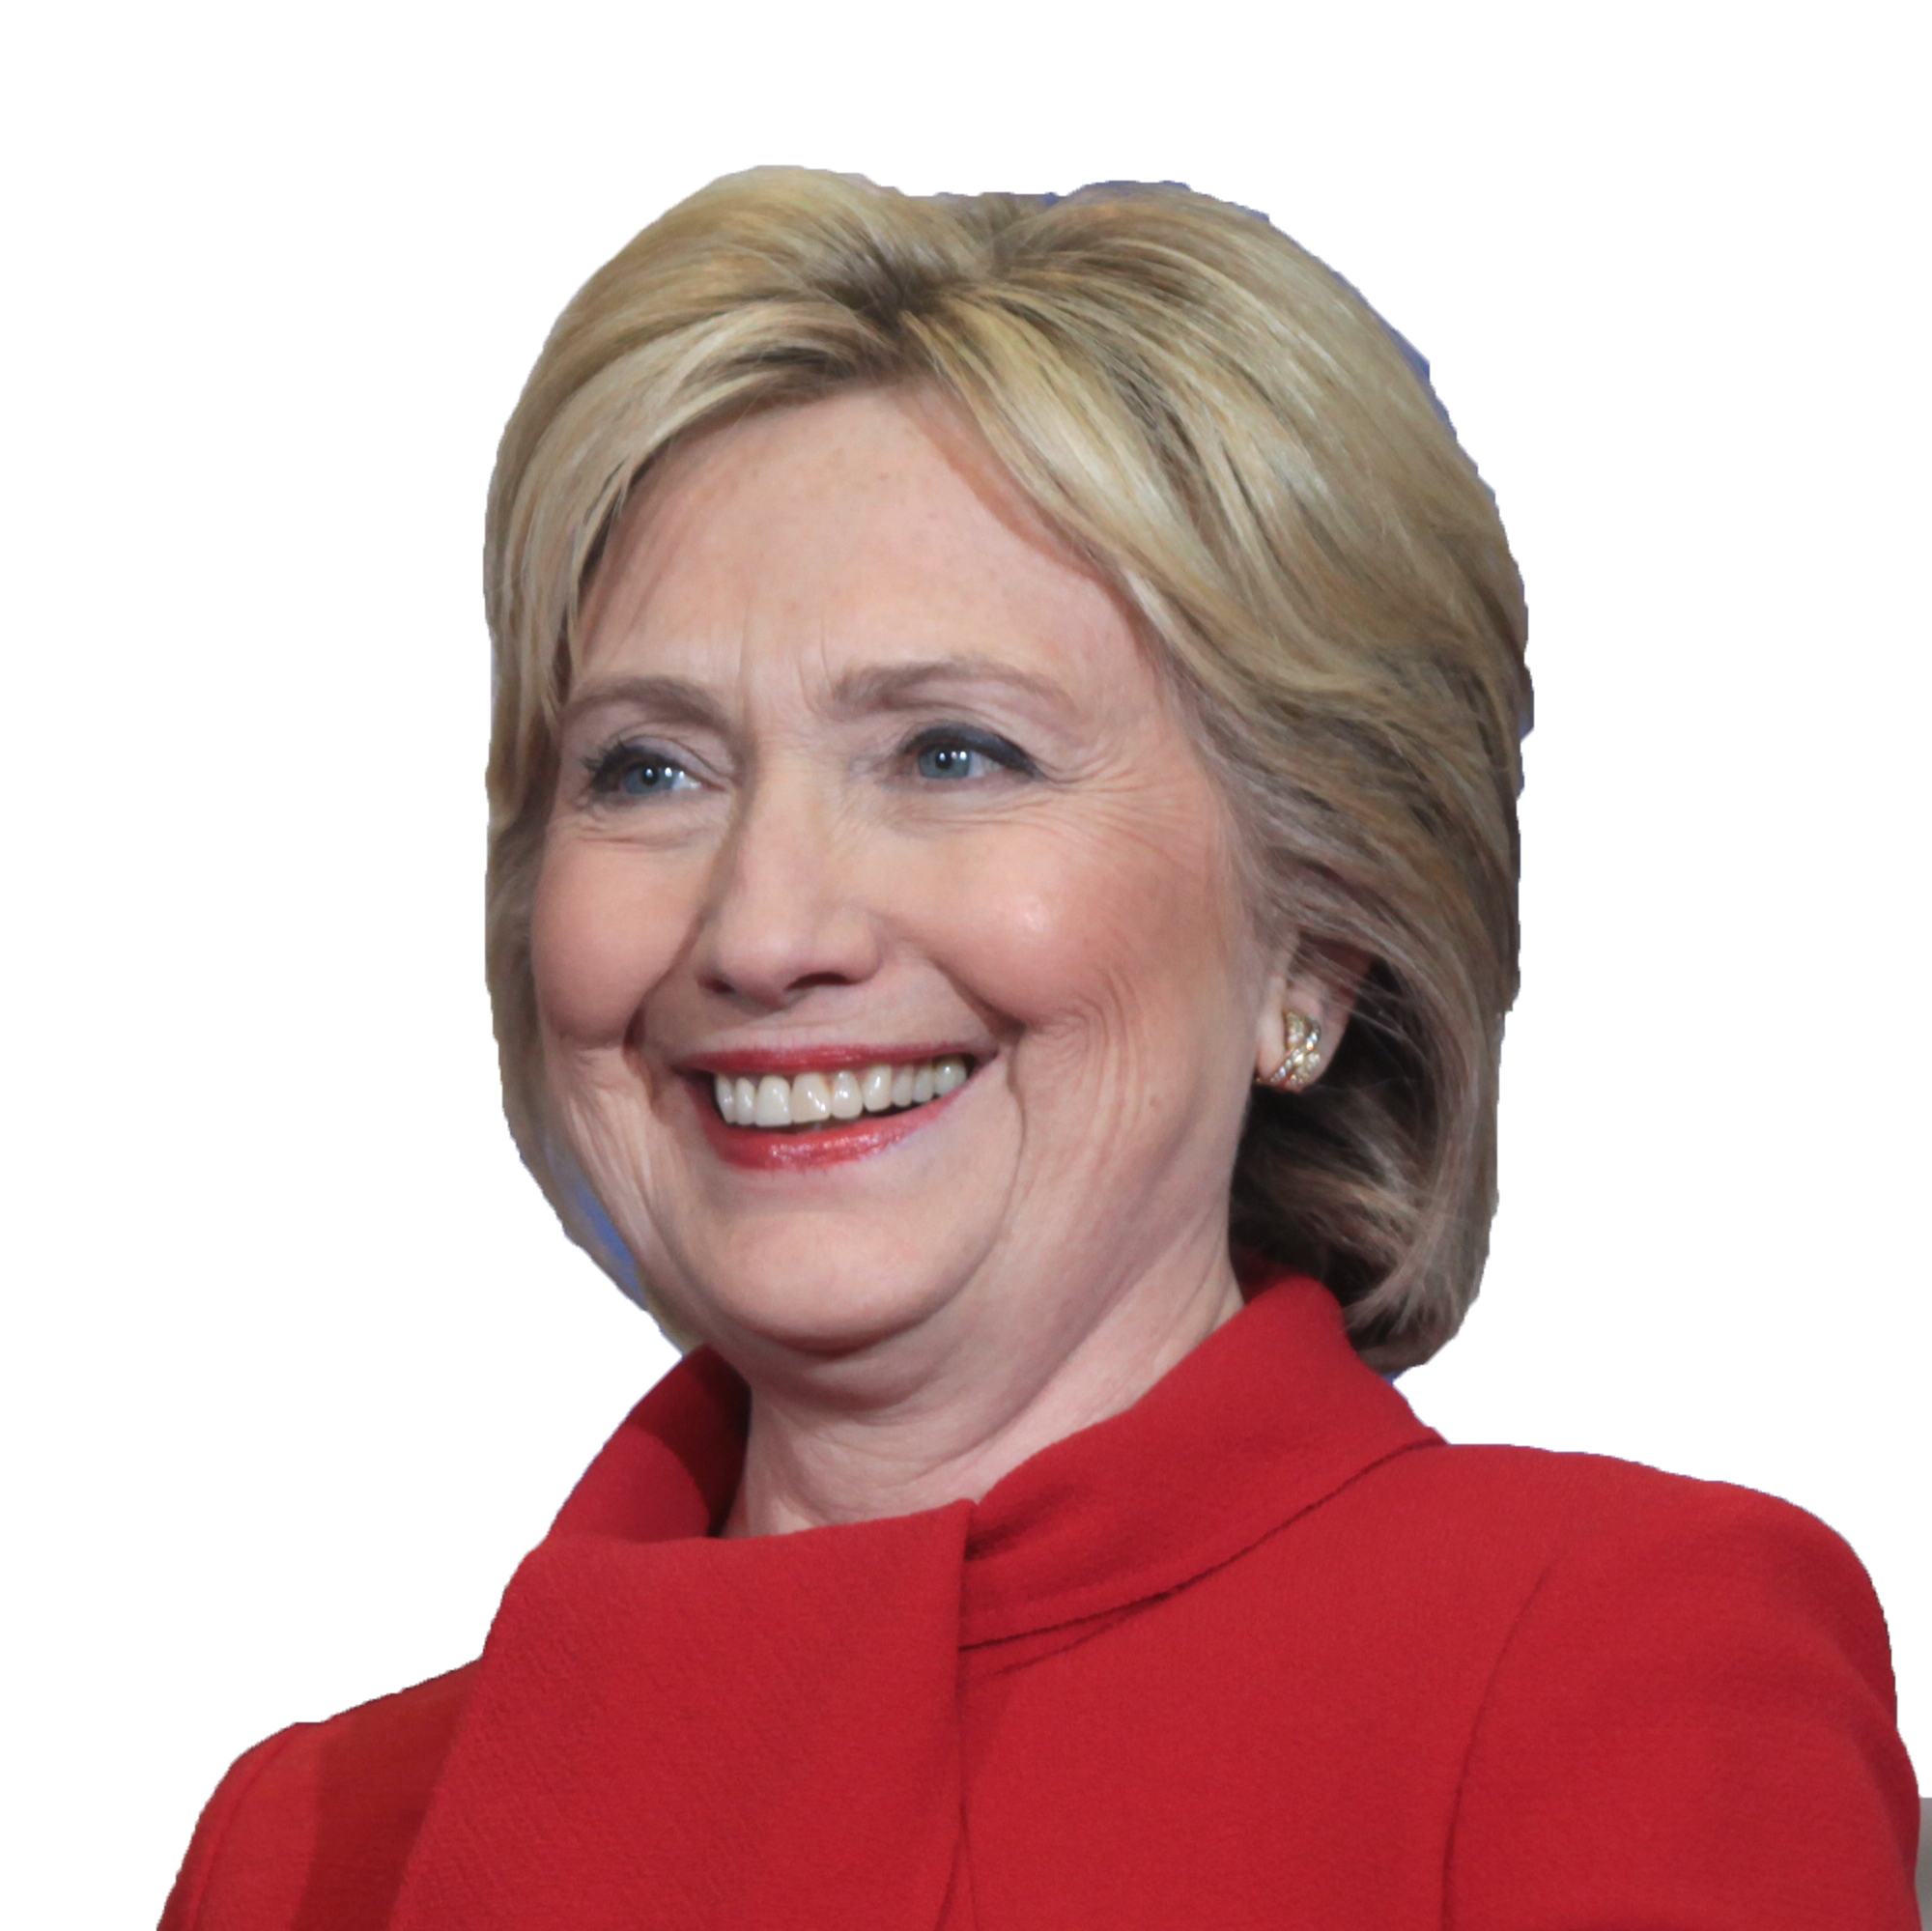 Hairstyle United Clinton Business Executive Us States PNG Image